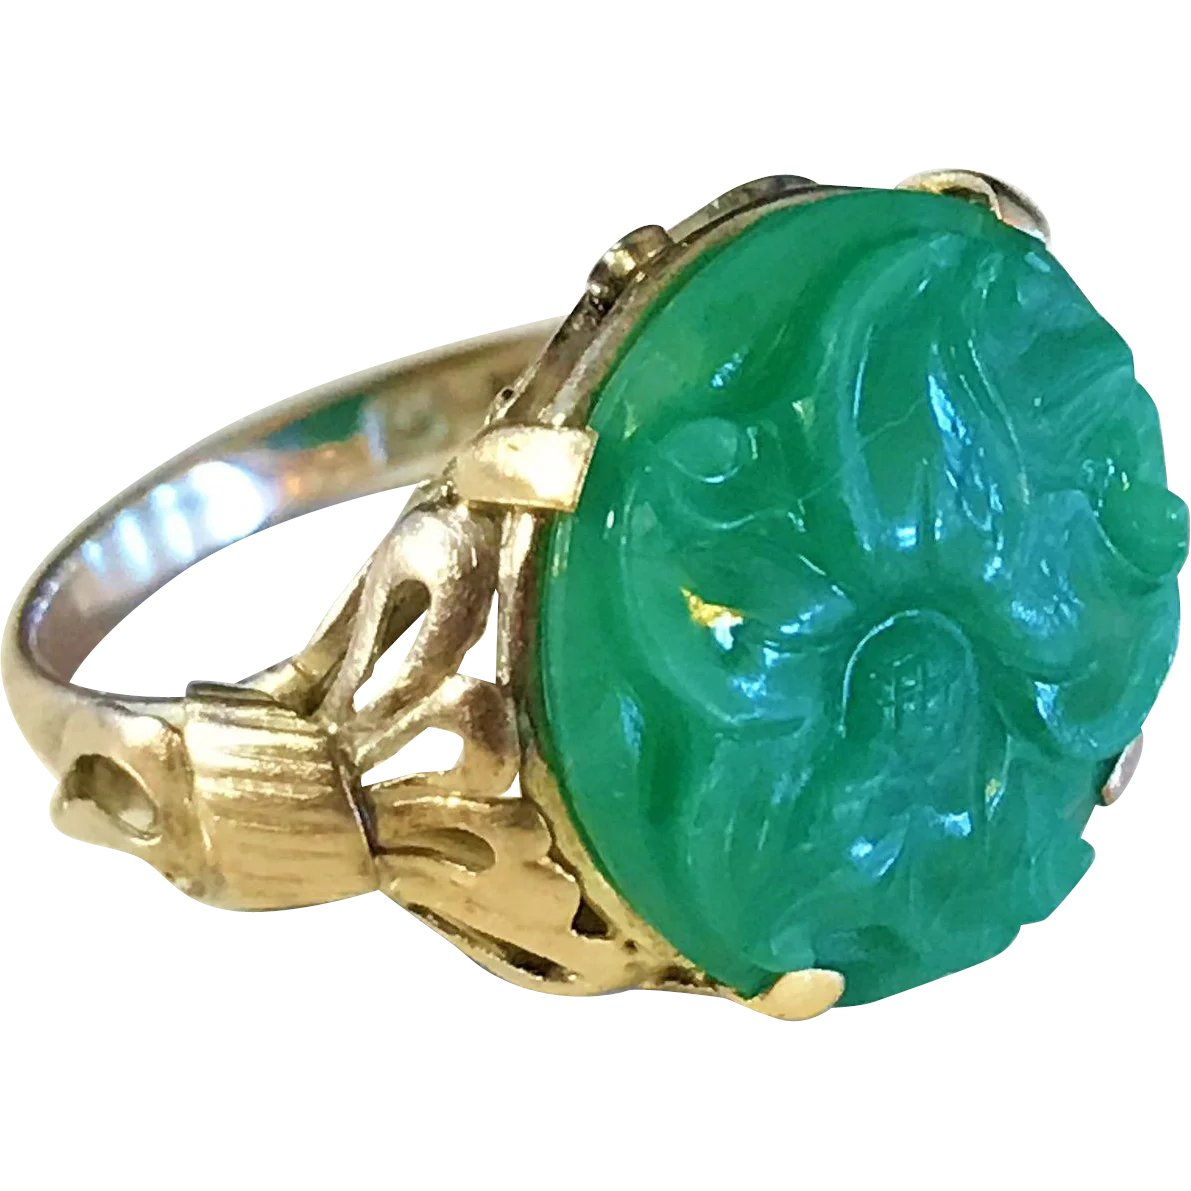 765bc720c149b Art Nouveau 14K Gold Carved Green Jadeite Jade Ring. Wow ...